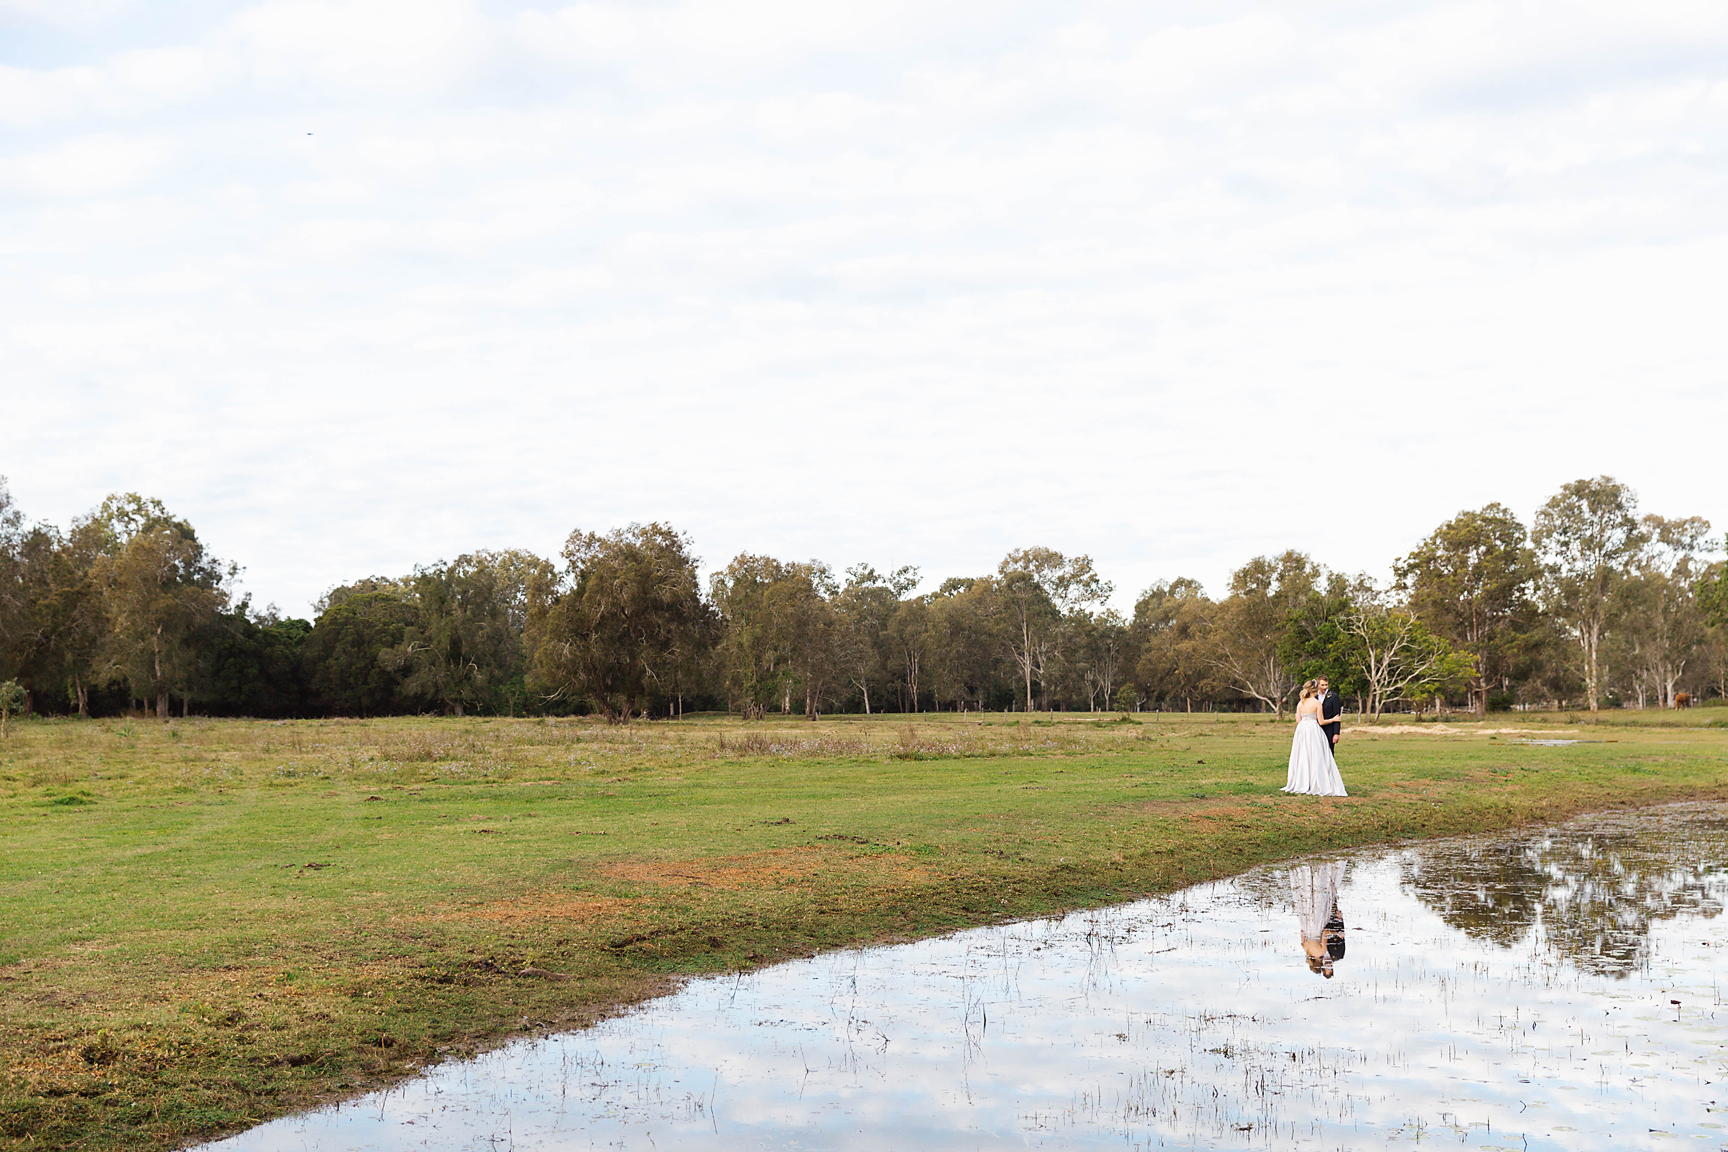 Location: Sharla Park Country Weddings & Events. Photography by Poppy & Sage Photography.